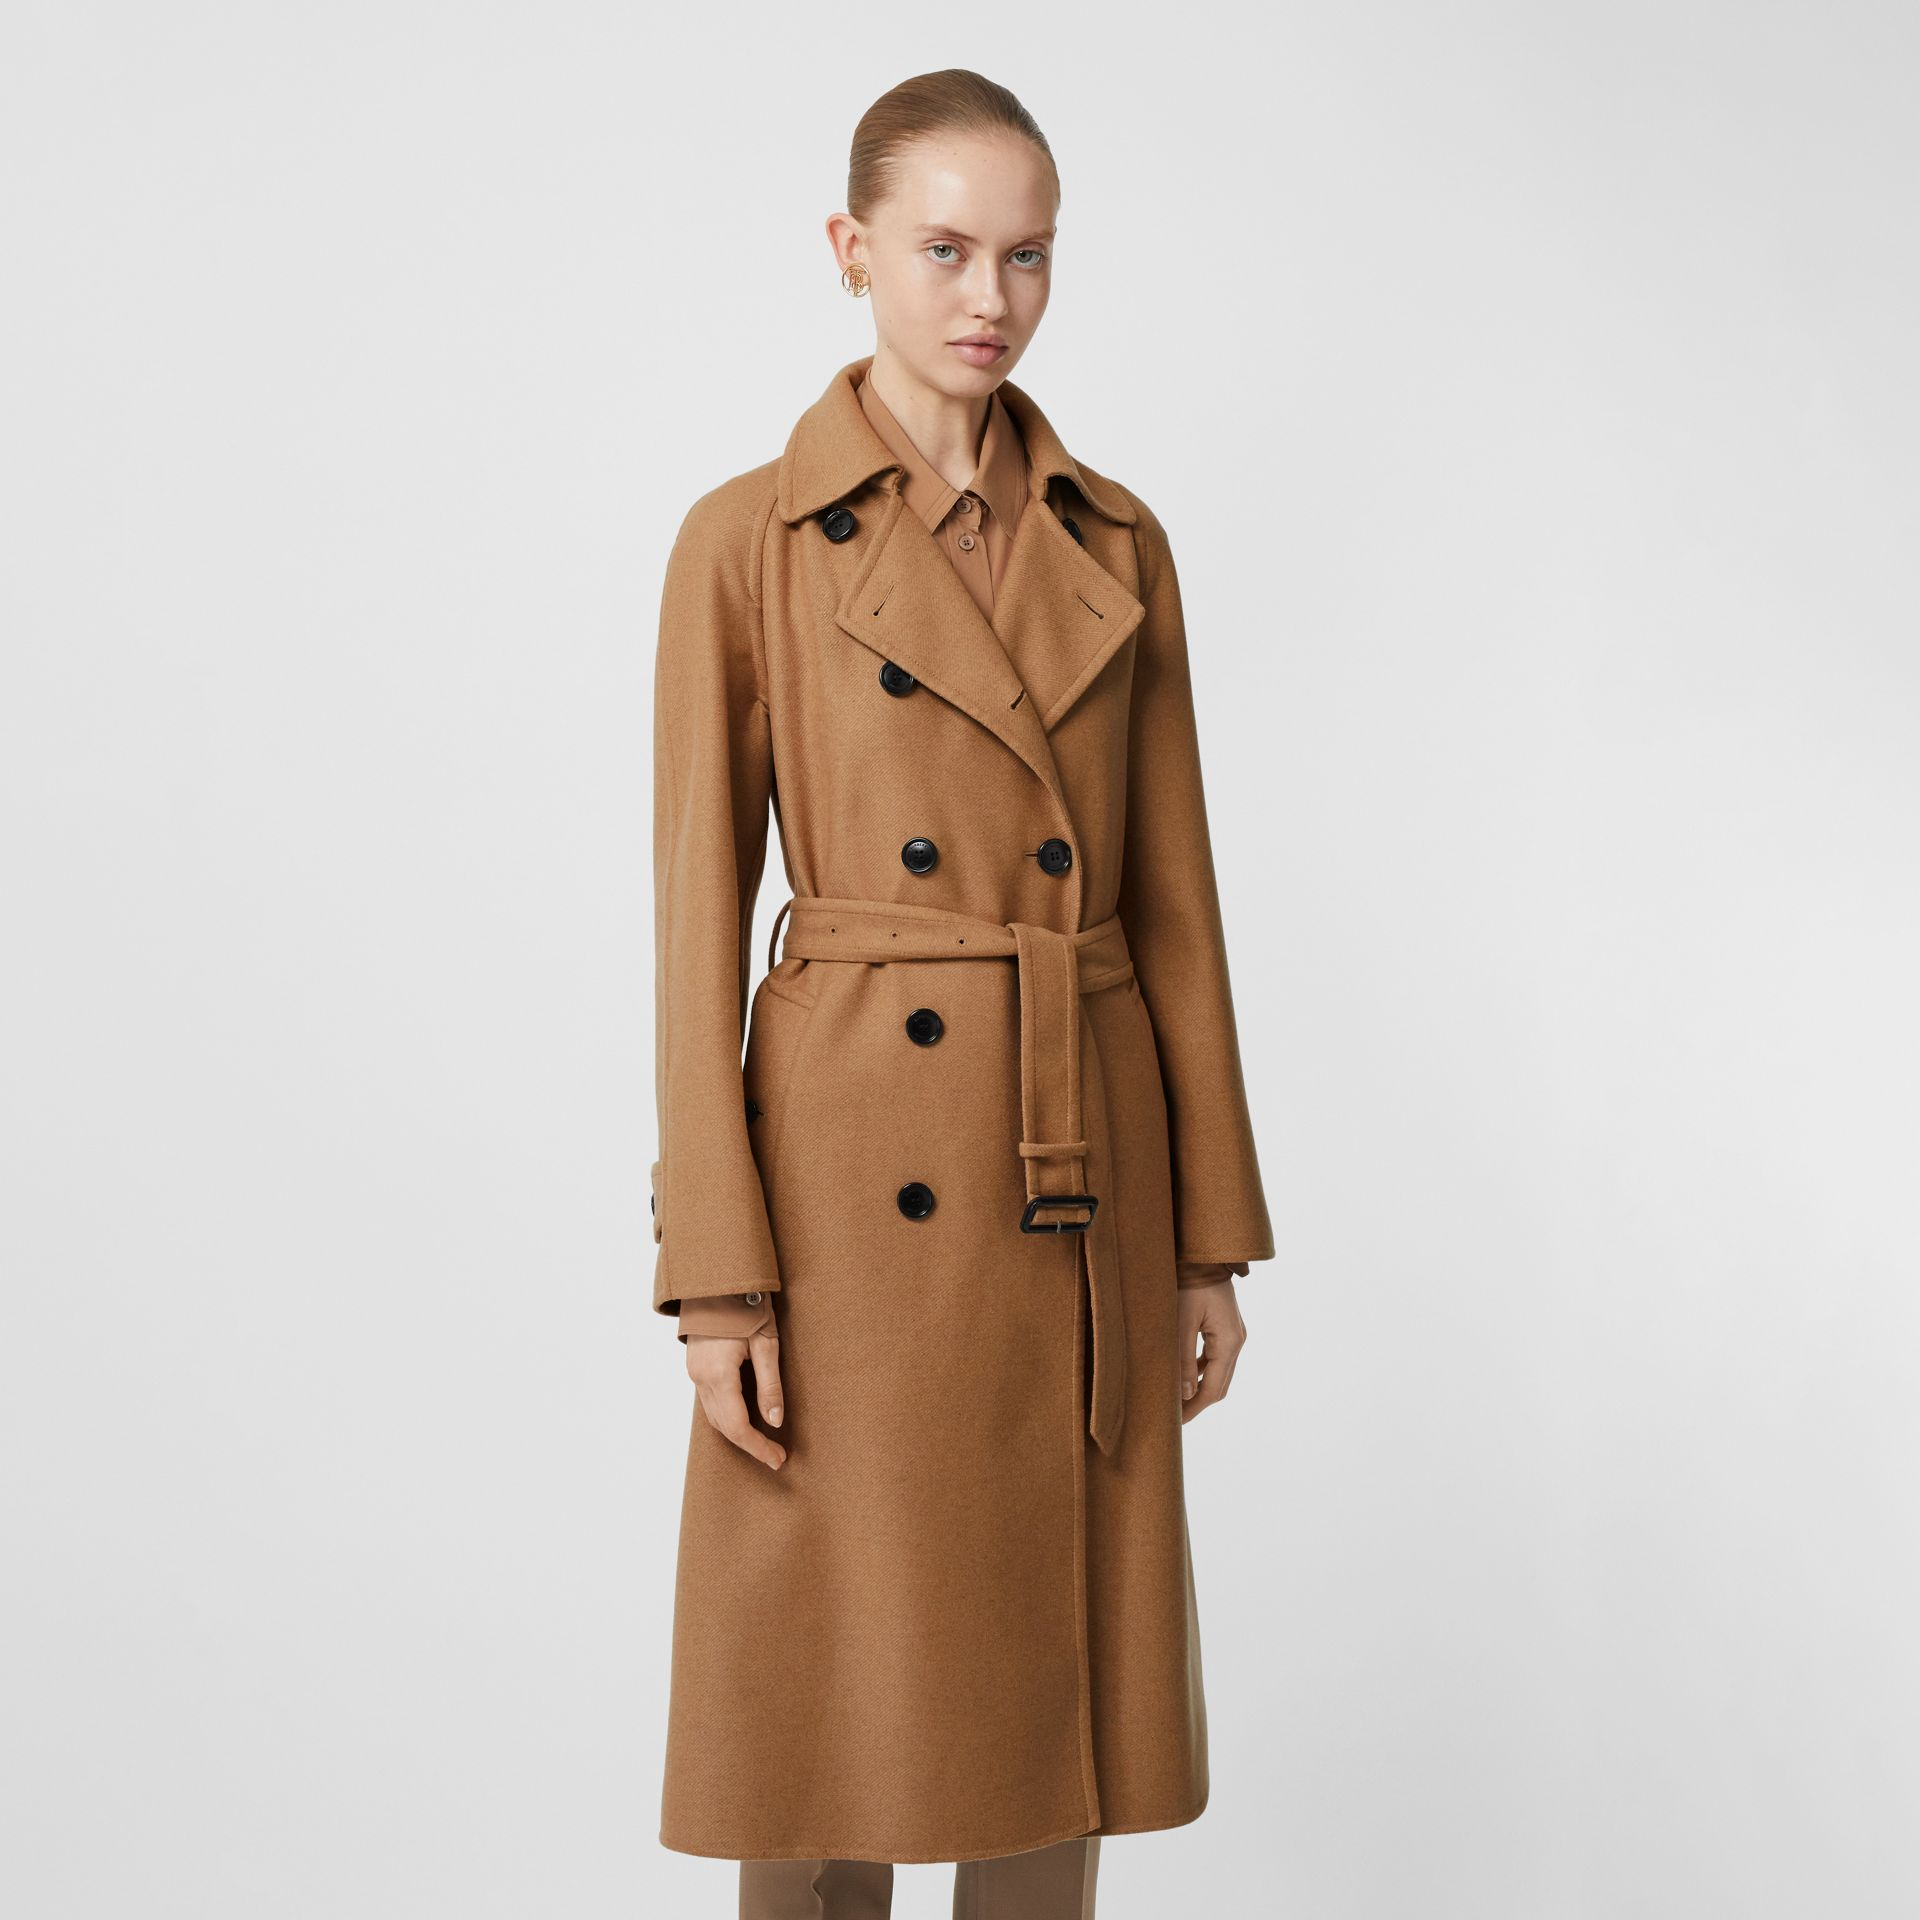 Cashmere Trench Coat in Bronze - Women | Burberry Singapore - gallery image 6